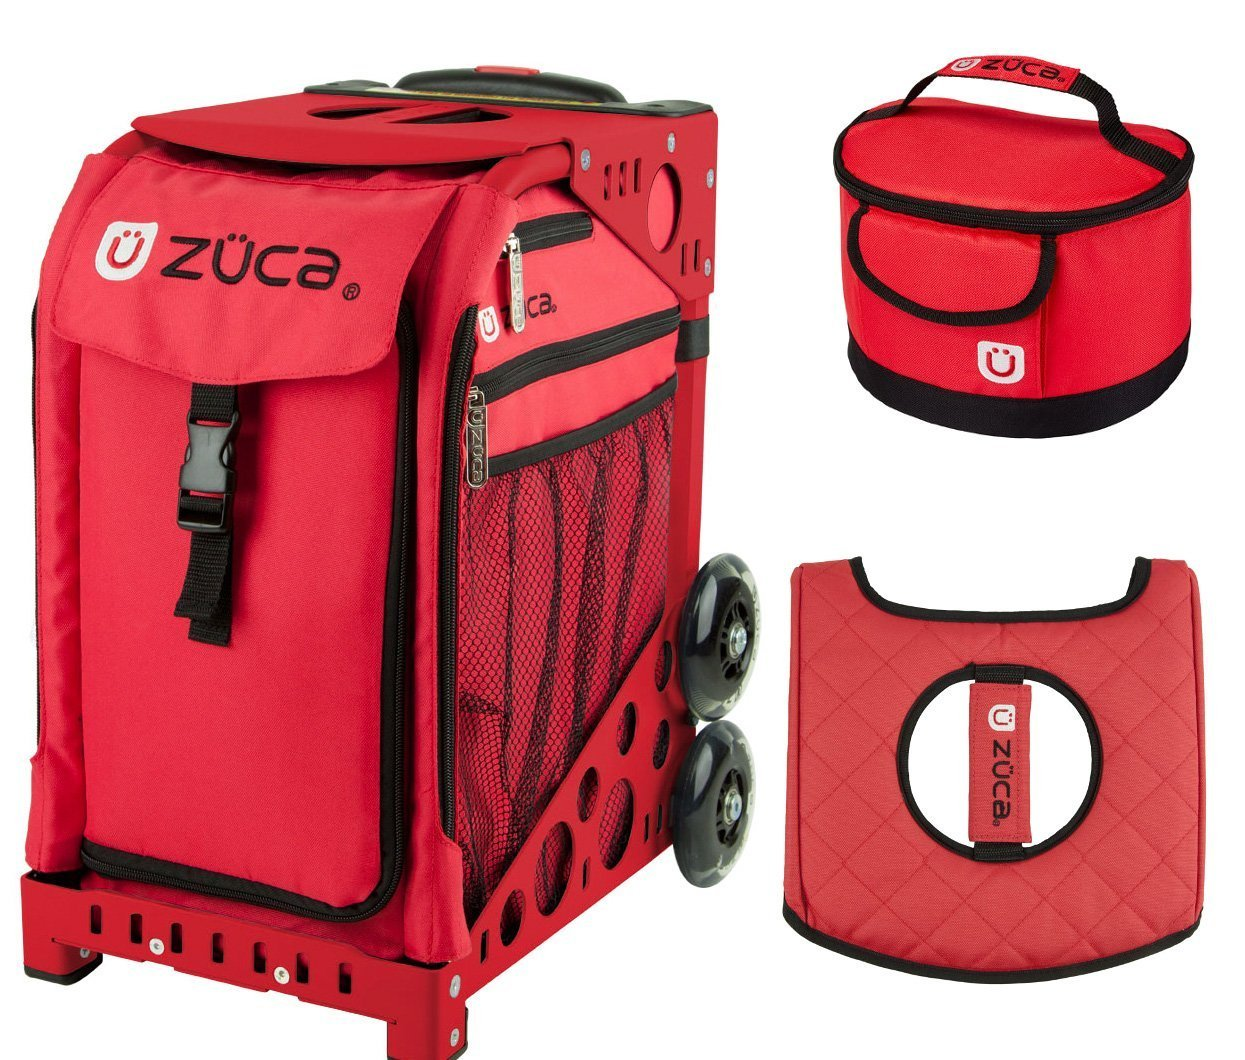 Zuca Sport Bag - Chili with Gift Lunchbox and Seat Cover (Red Frame) by ZUCA